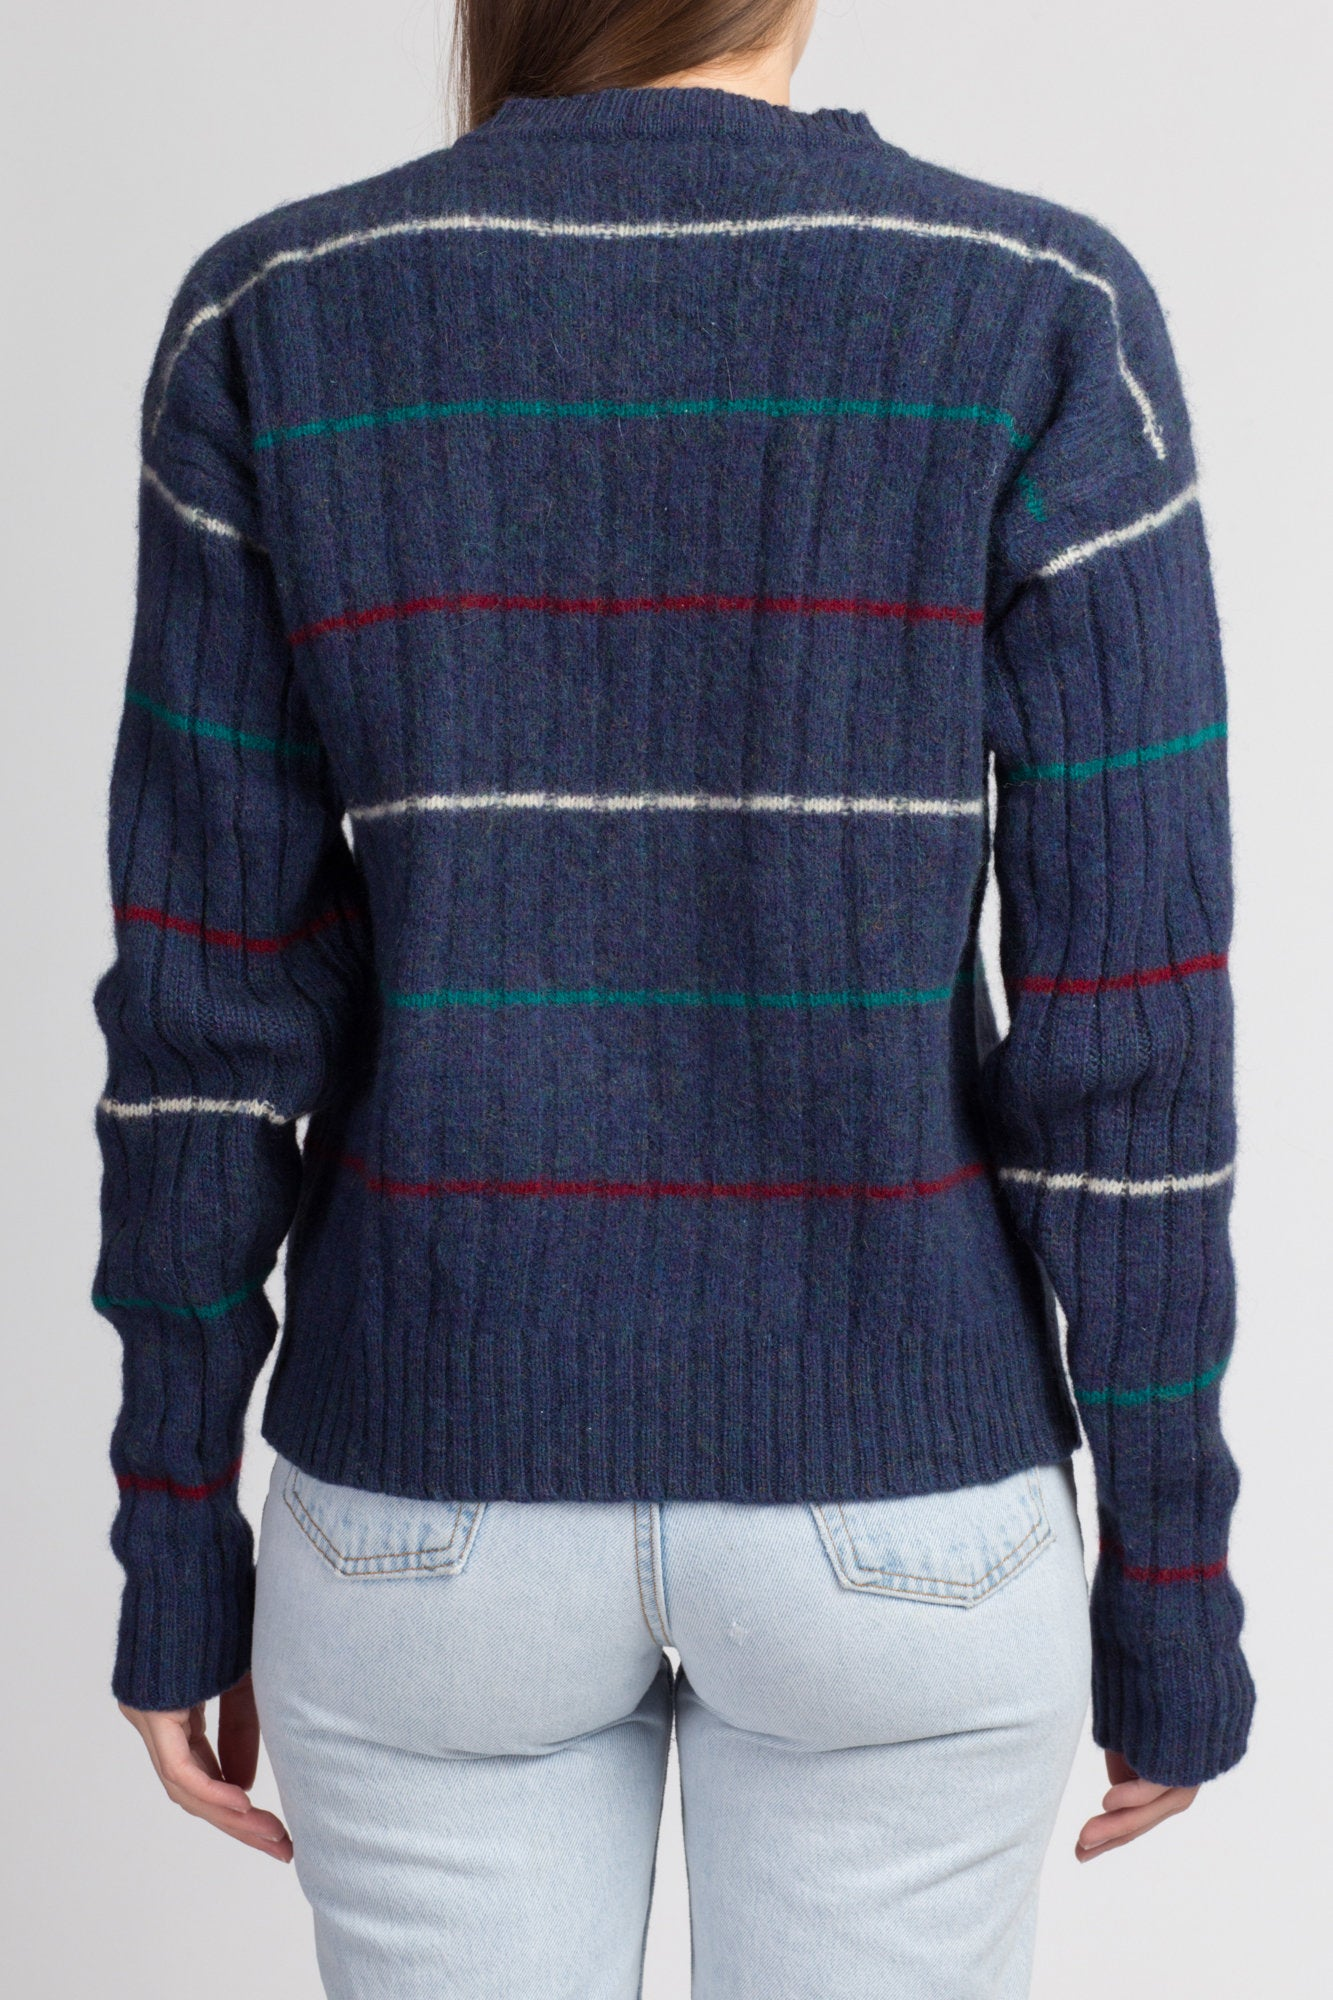 Vintage Yves Saint Laurent Striped Knit Sweater - Men's Small